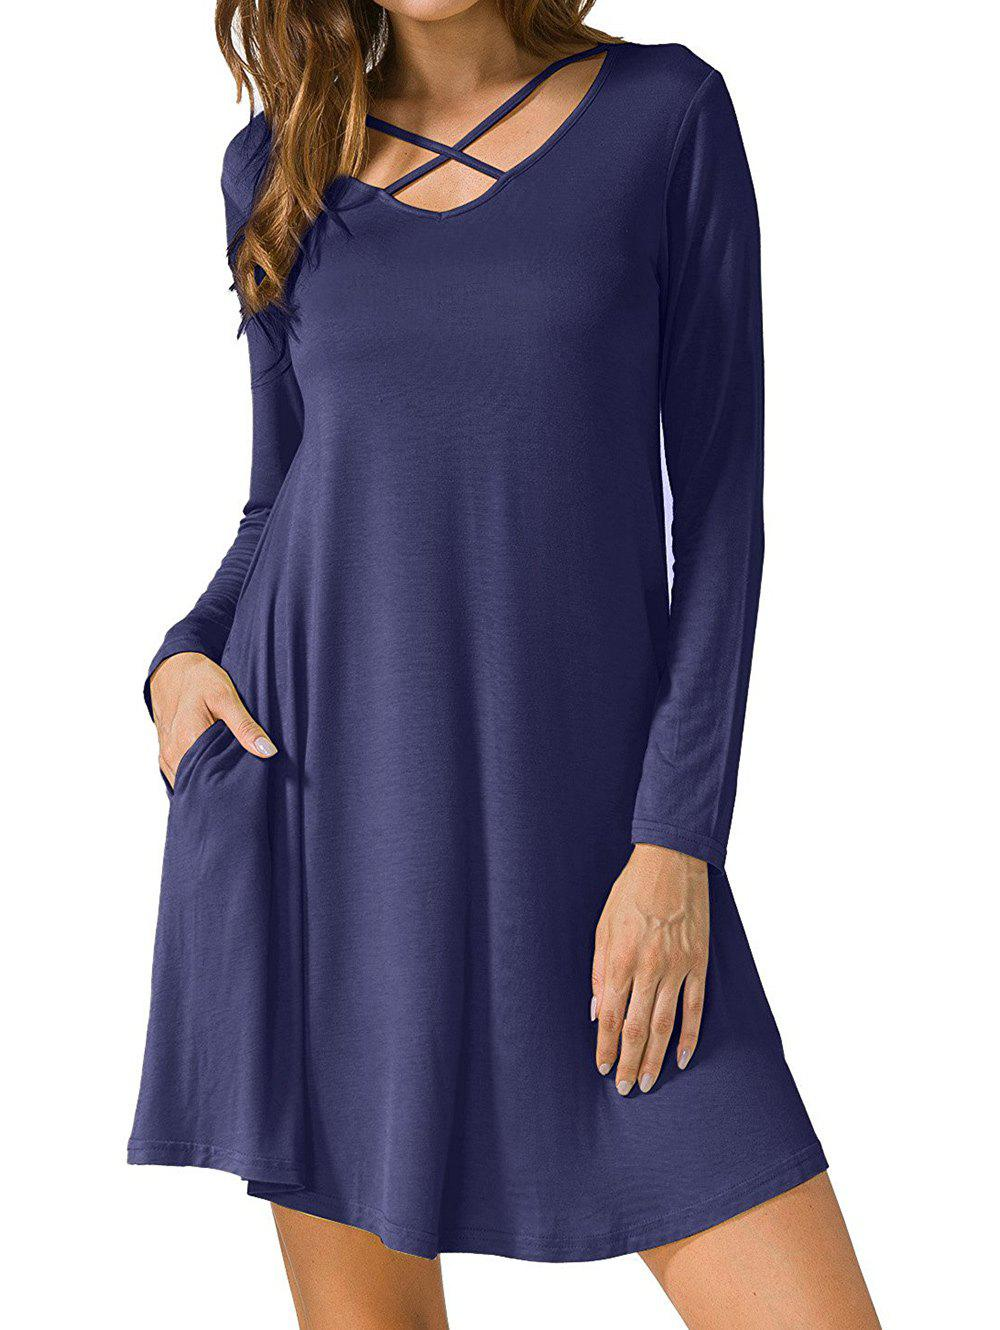 Long Sleeve V Neck T-shirt Skater DressWOMEN<br><br>Size: XL; Color: CADETBLUE; Style: Casual; Material: Polyester; Silhouette: A-Line; Dress Type: Swing Dress,Tee Dress; Dresses Length: Mini; Neckline: V-Neck; Sleeve Length: Long Sleeves; Embellishment: Criss-Cross; Pattern Type: Solid Color; With Belt: No; Season: Fall,Spring; Weight: 0.2900kg; Package Contents: 1 x Dress; Occasion: Casual;